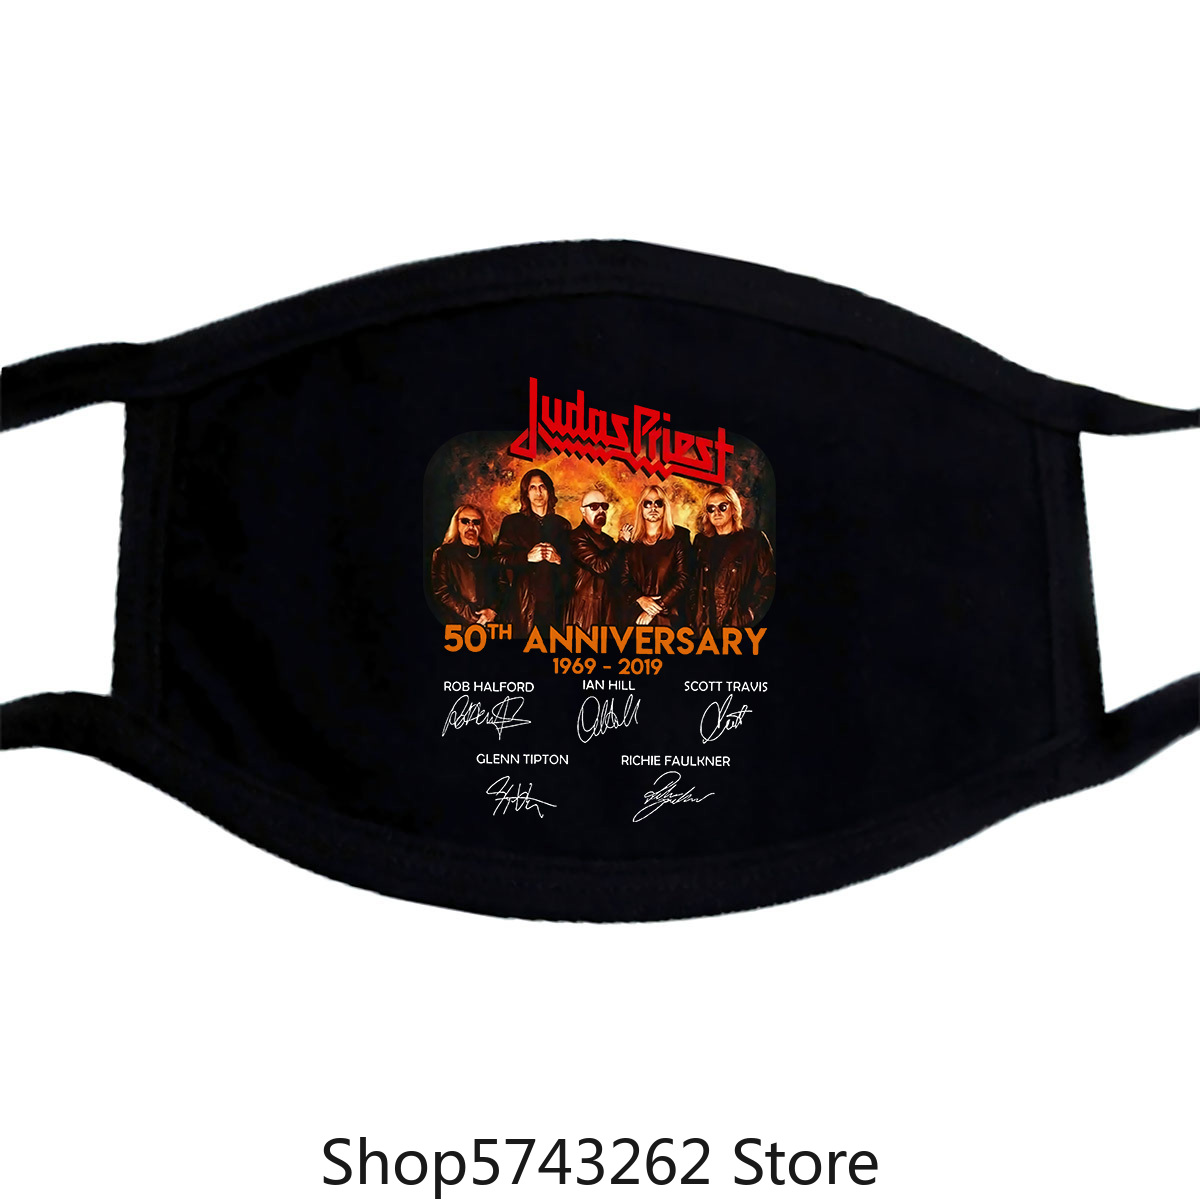 Judas Priest 50Th Anniversary Mask Vintage Gift For Men Women Funny Black Tee Washable Reusable Mask With